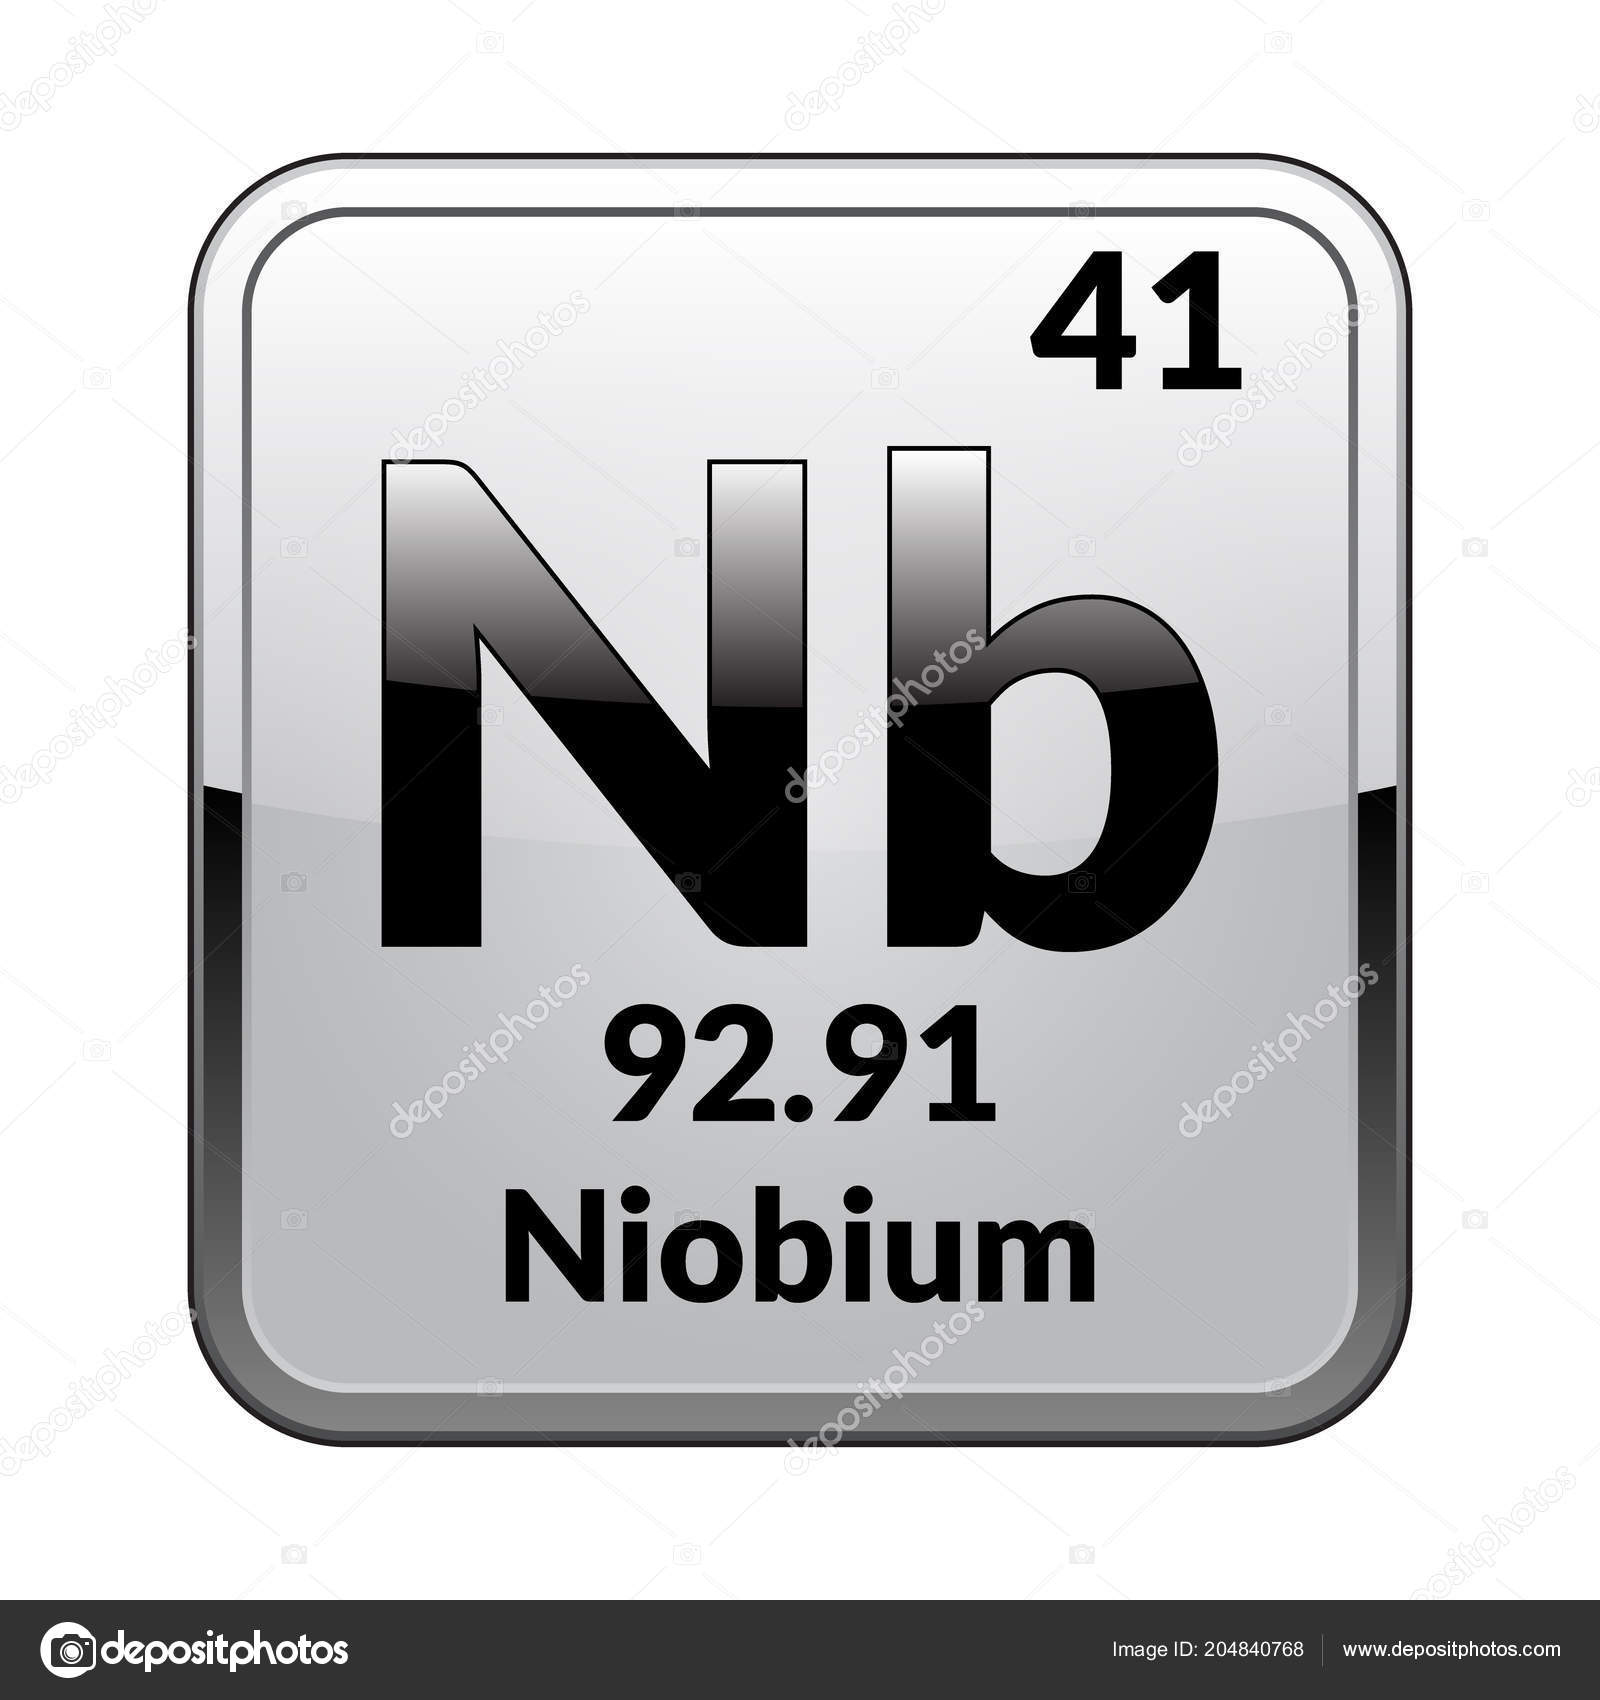 Niobium Element Periodic Table Restaurant Interior Design Drawing